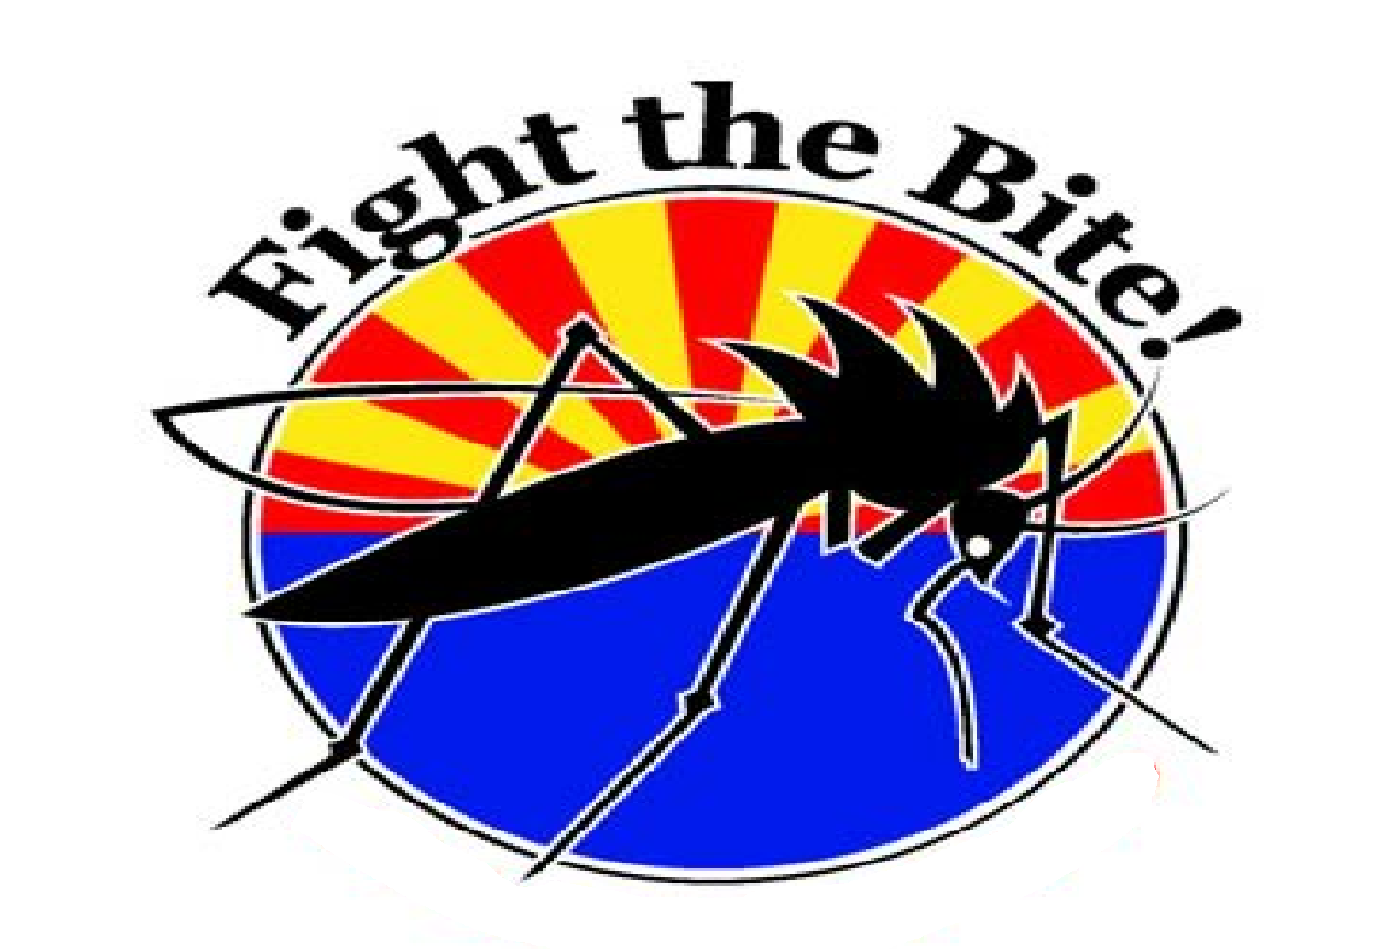 Fight the bite